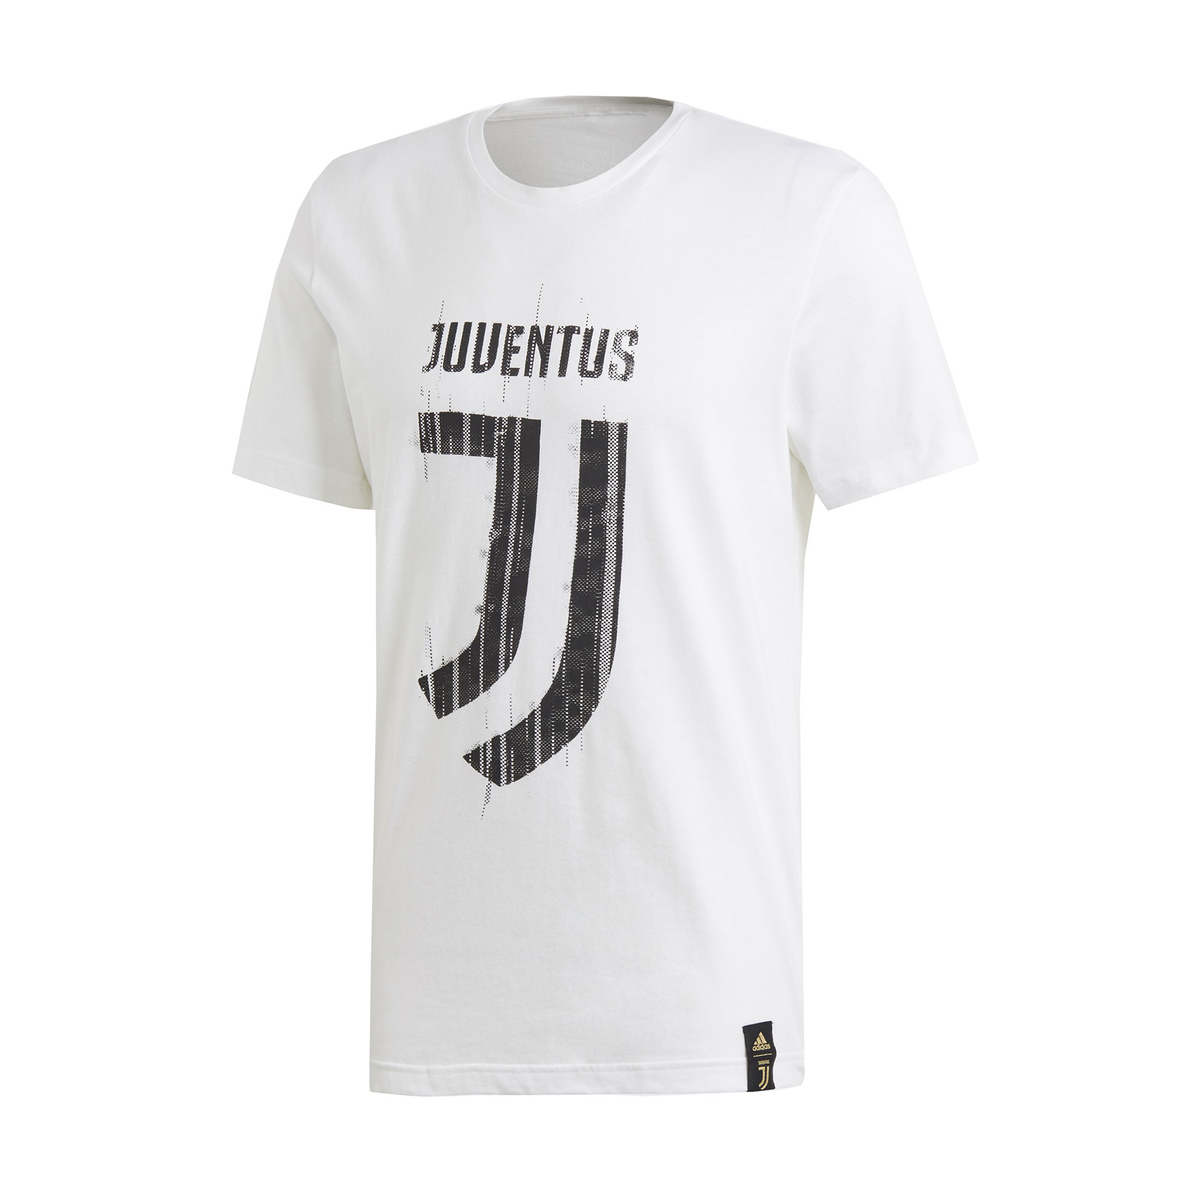 T-SHIRT DNA GRAPHIC JUVENTUS